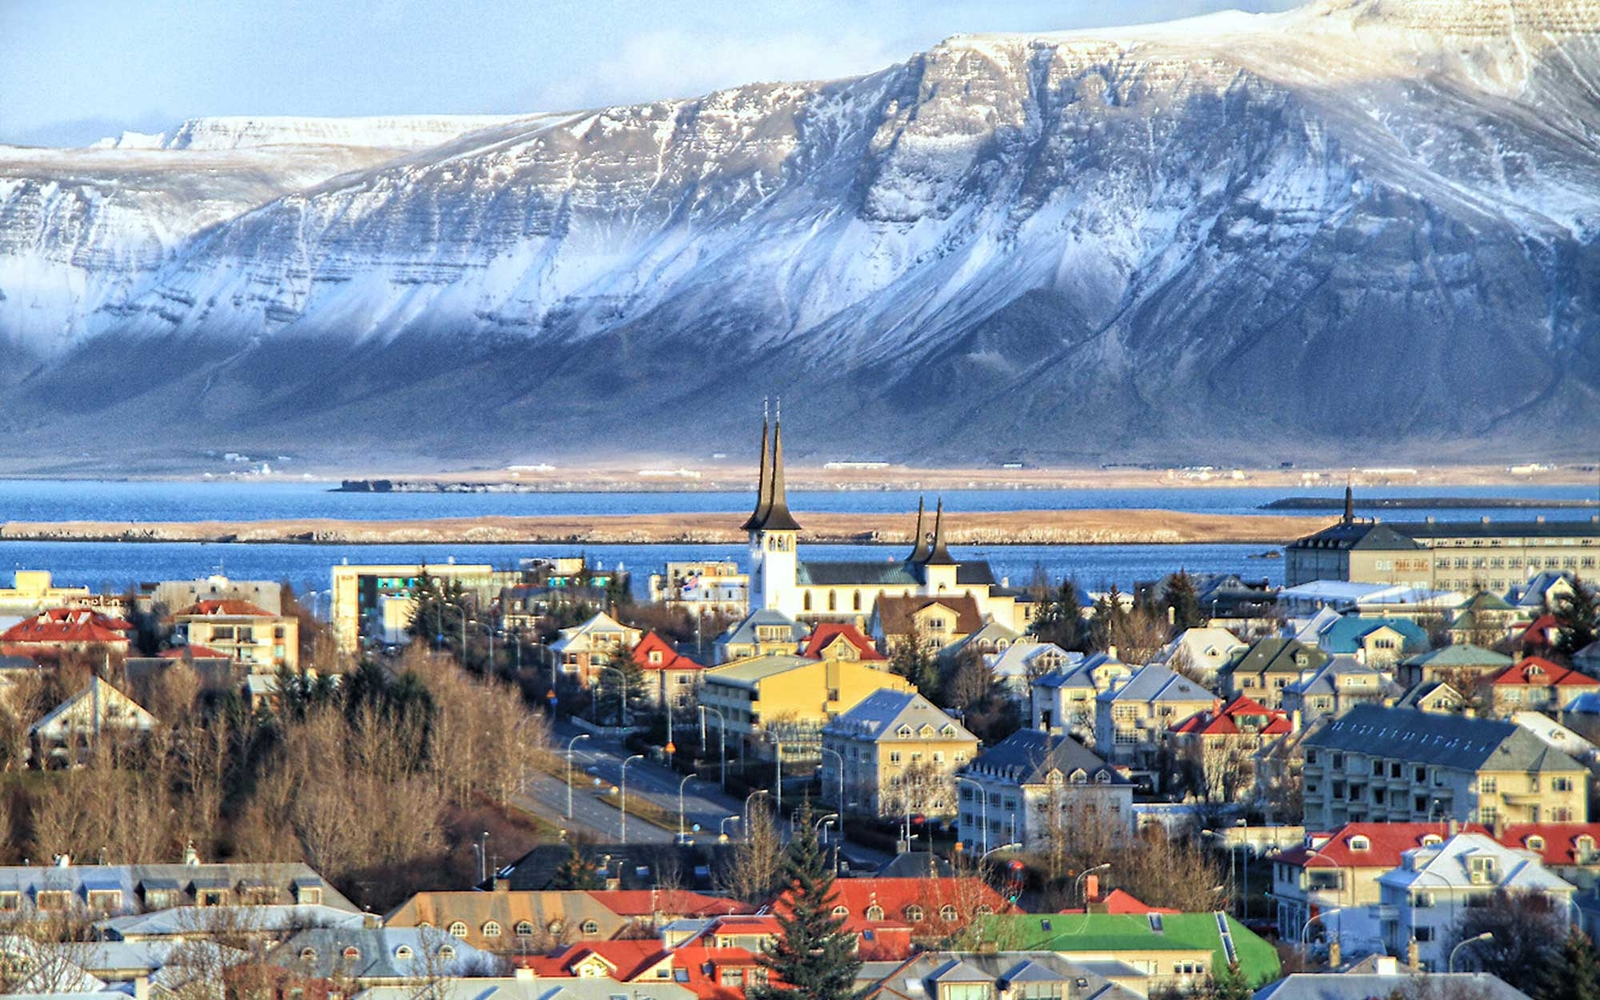 Reyjavek in winter, view of the town